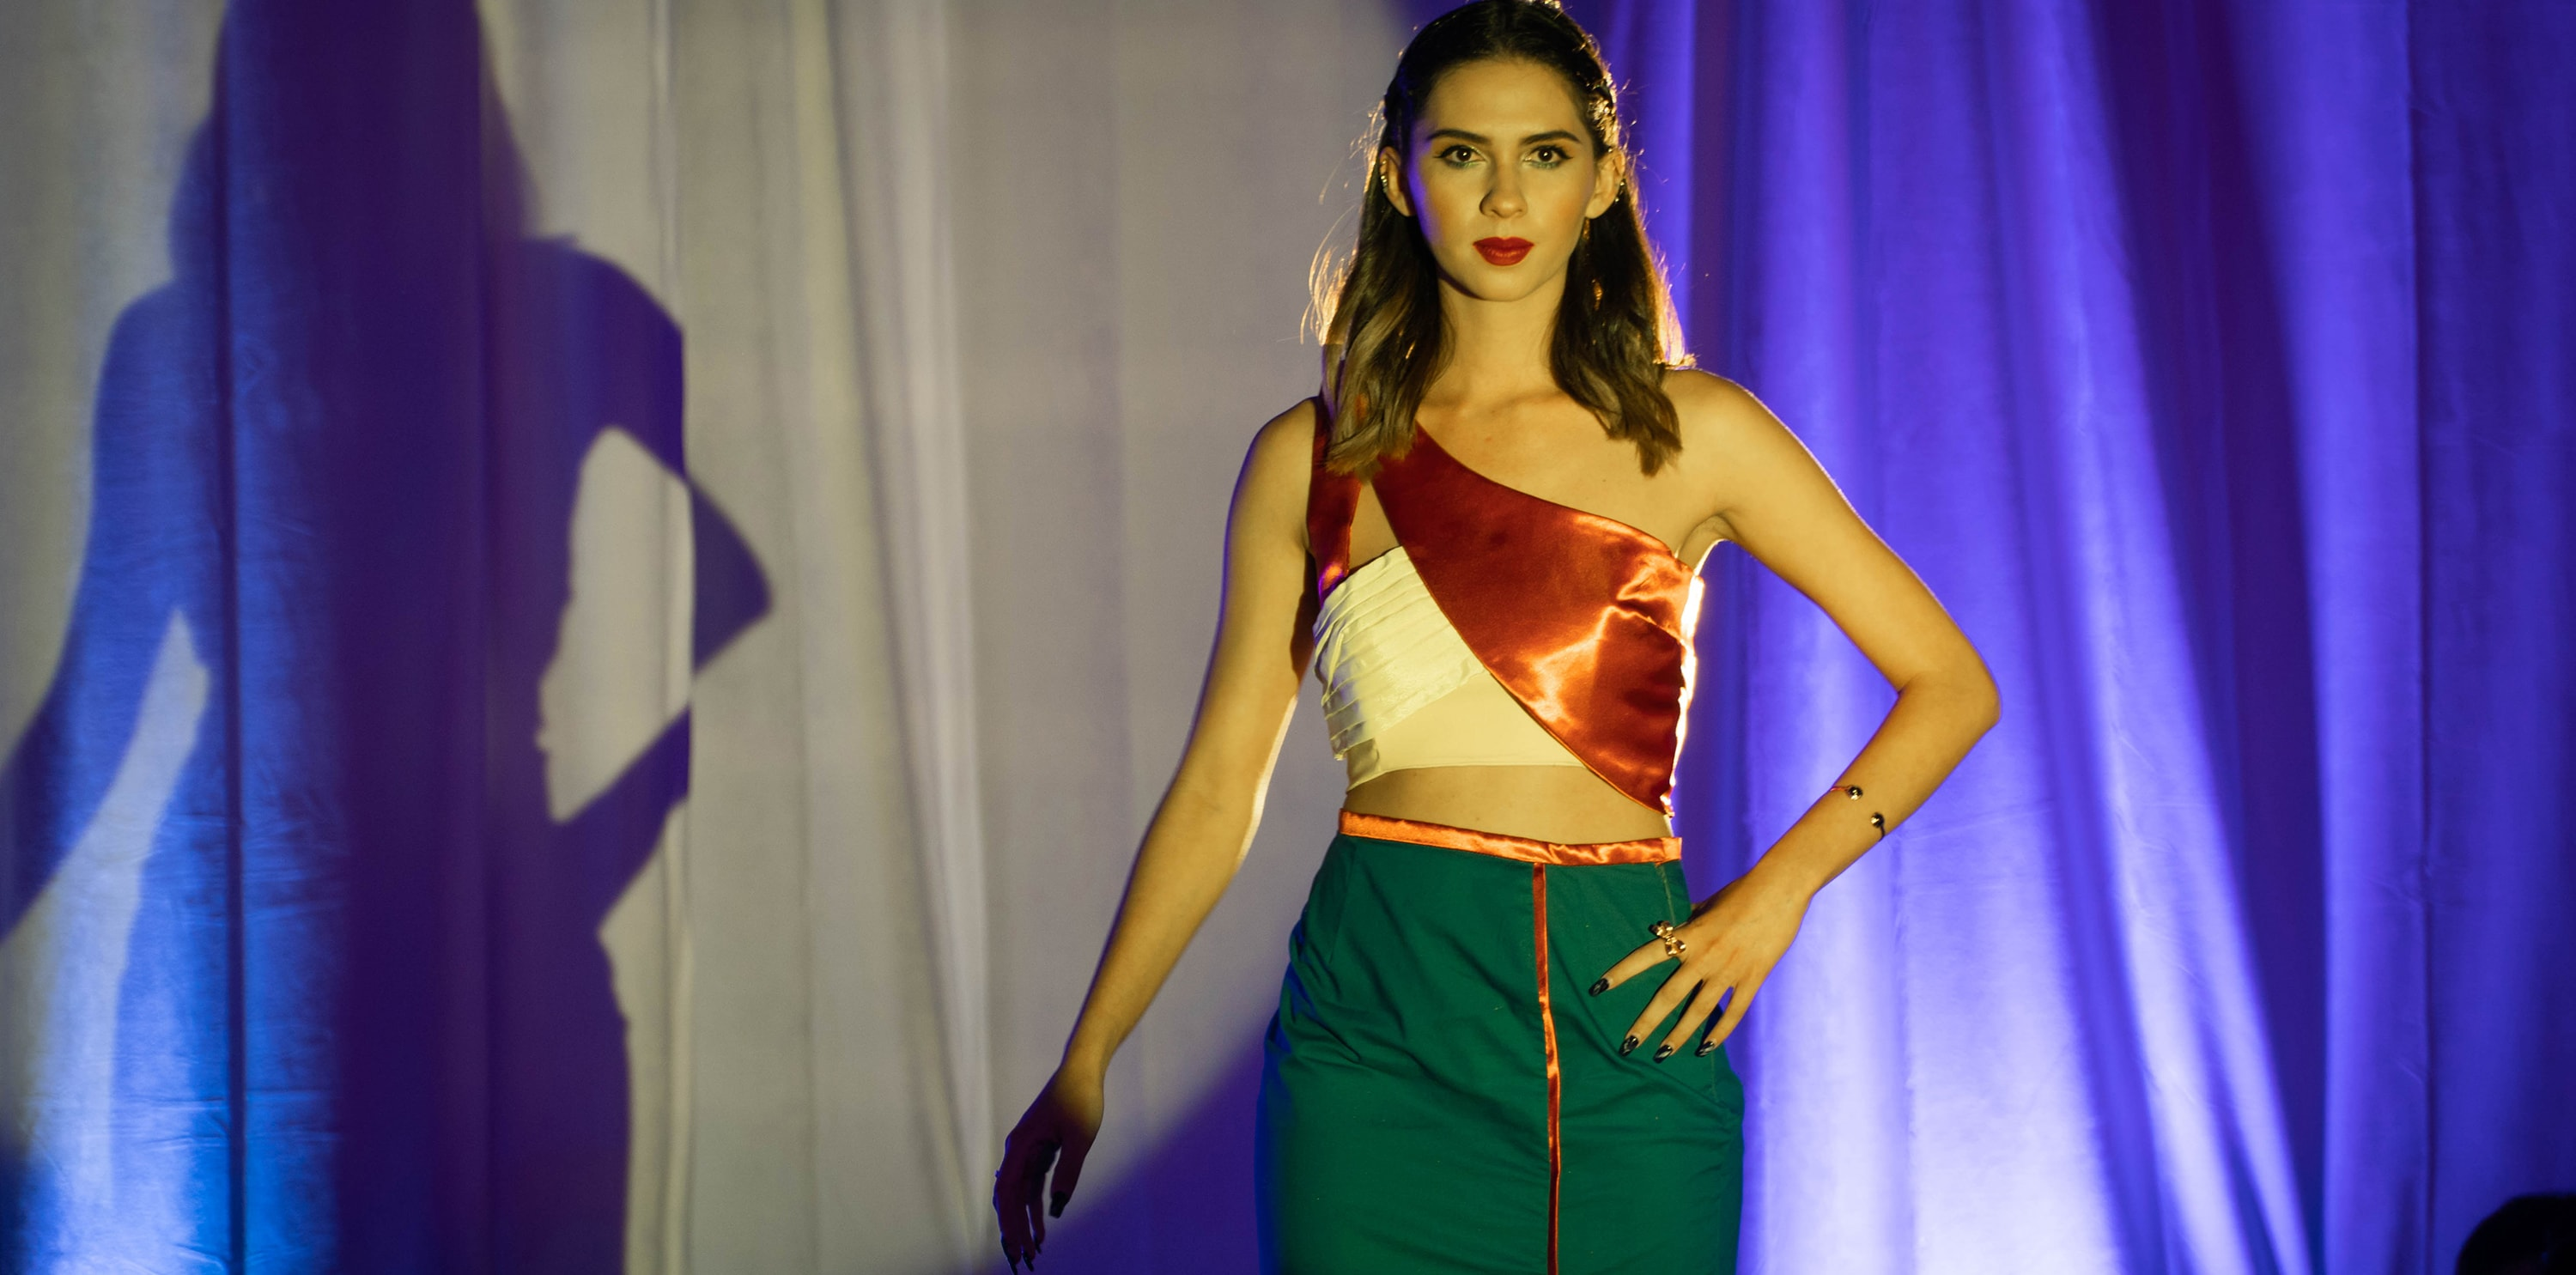 Model on a fashion runway wearing a red and white off the shoulder top with a green dress skirt.